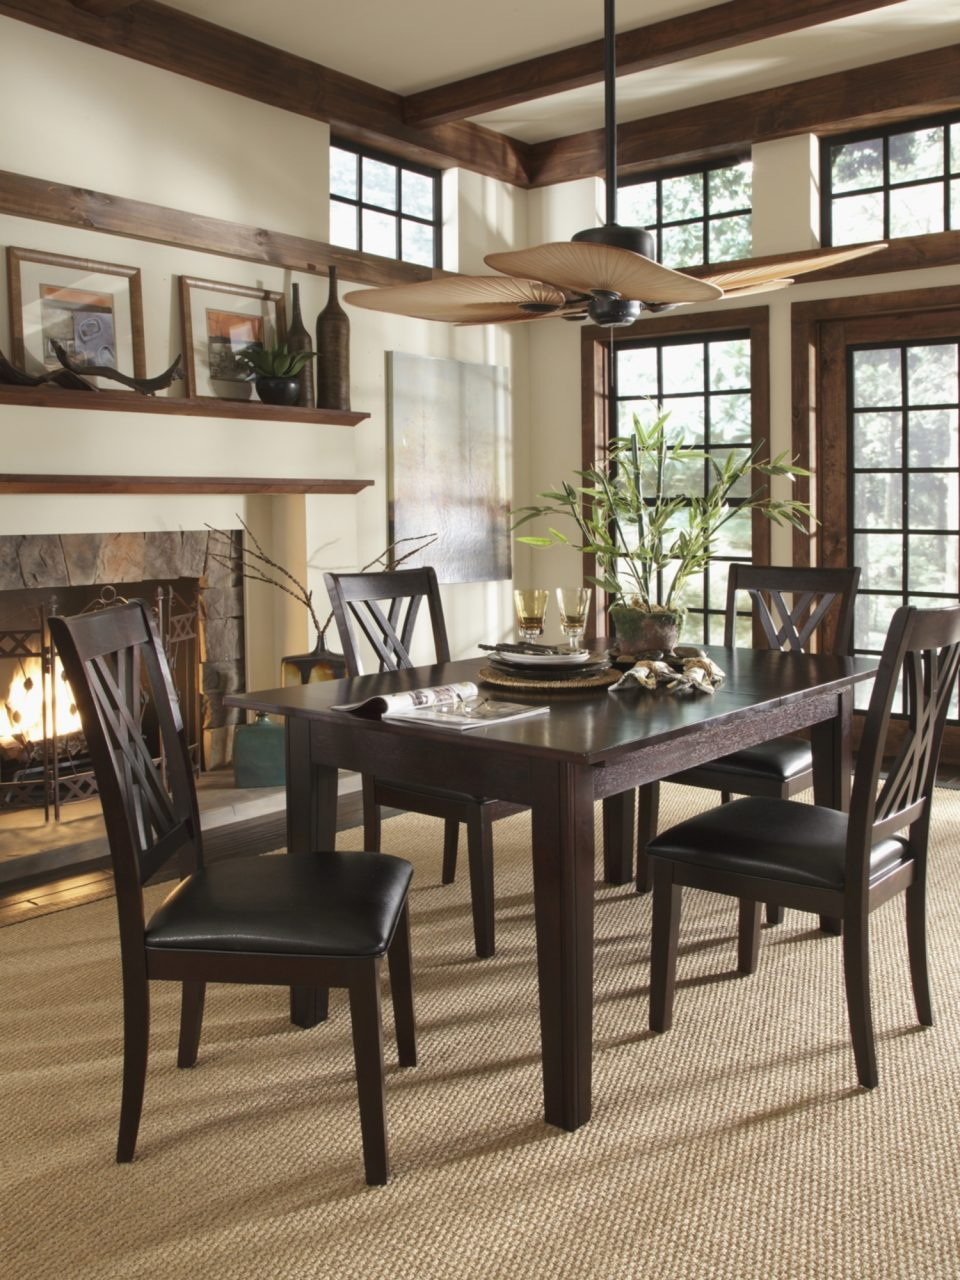 Dining Room Ceiling Fans With Lights Trends Dining Room Ceiling Fans